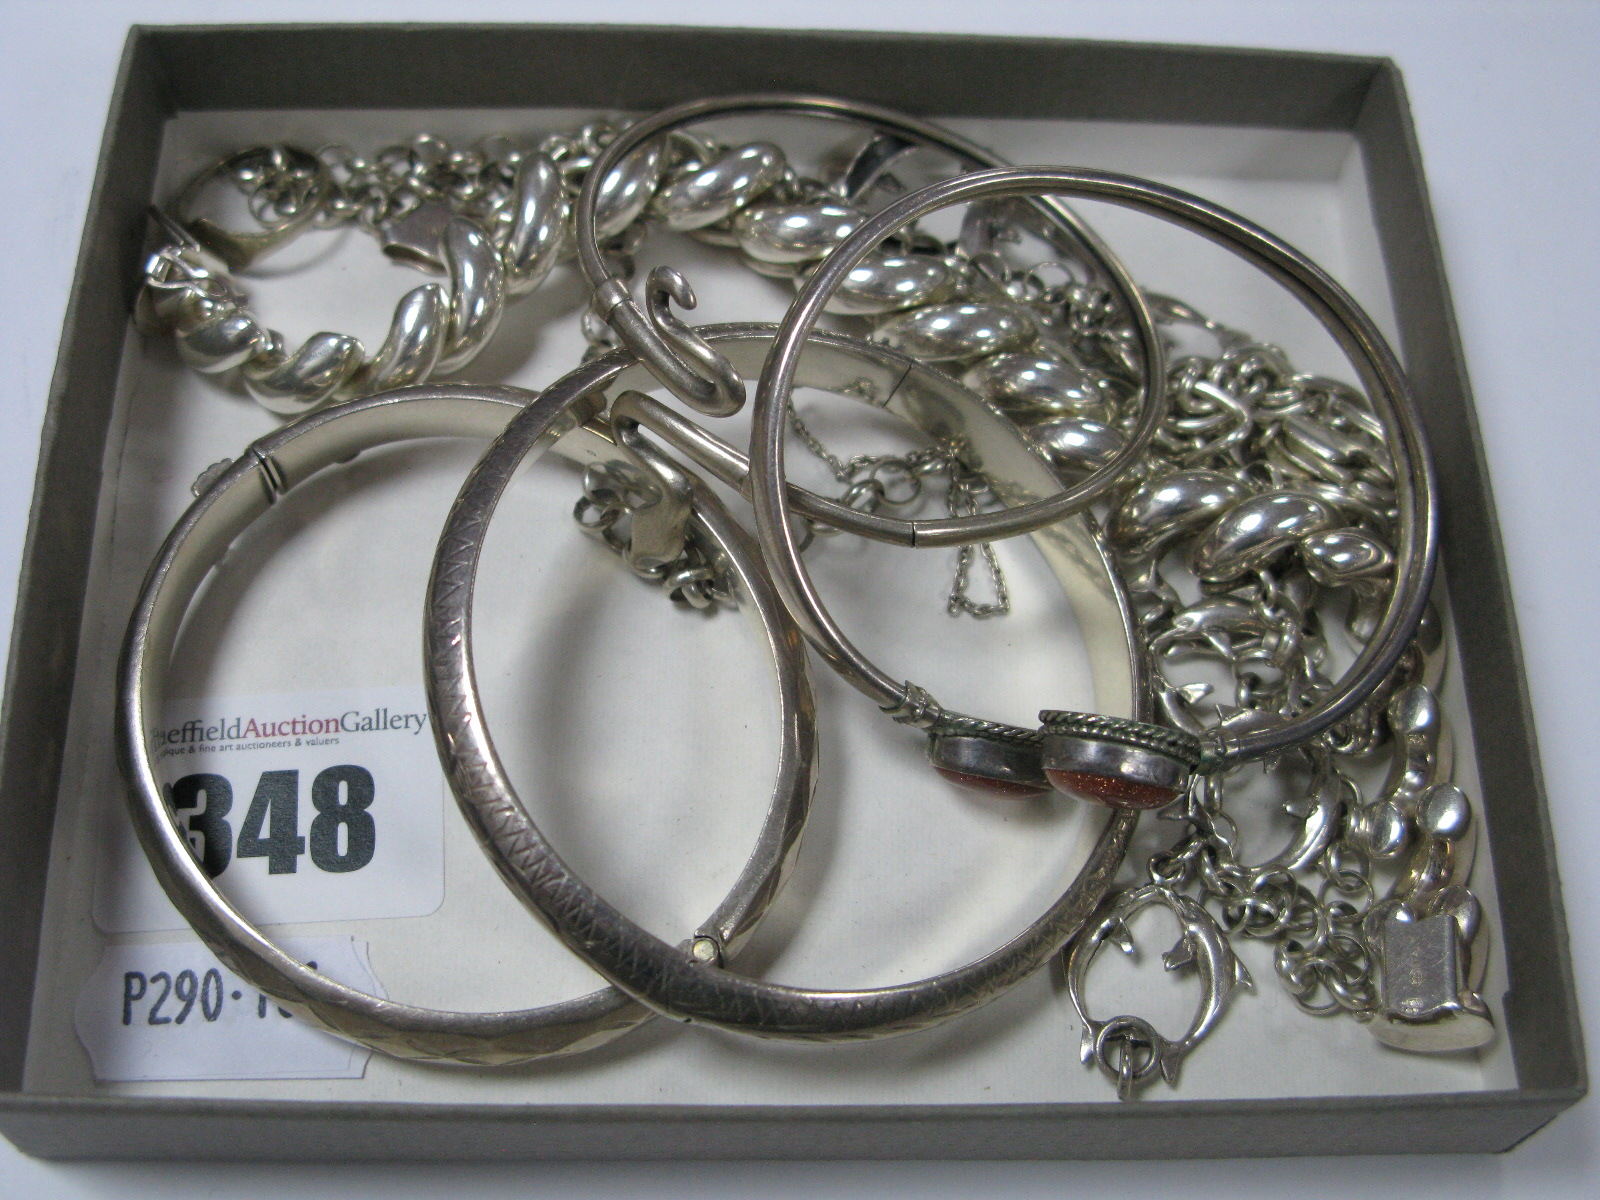 """Lot 348 - A Selection of """"925"""" and Other Modern Bracelets, bangles and a belcher link chain, including a"""